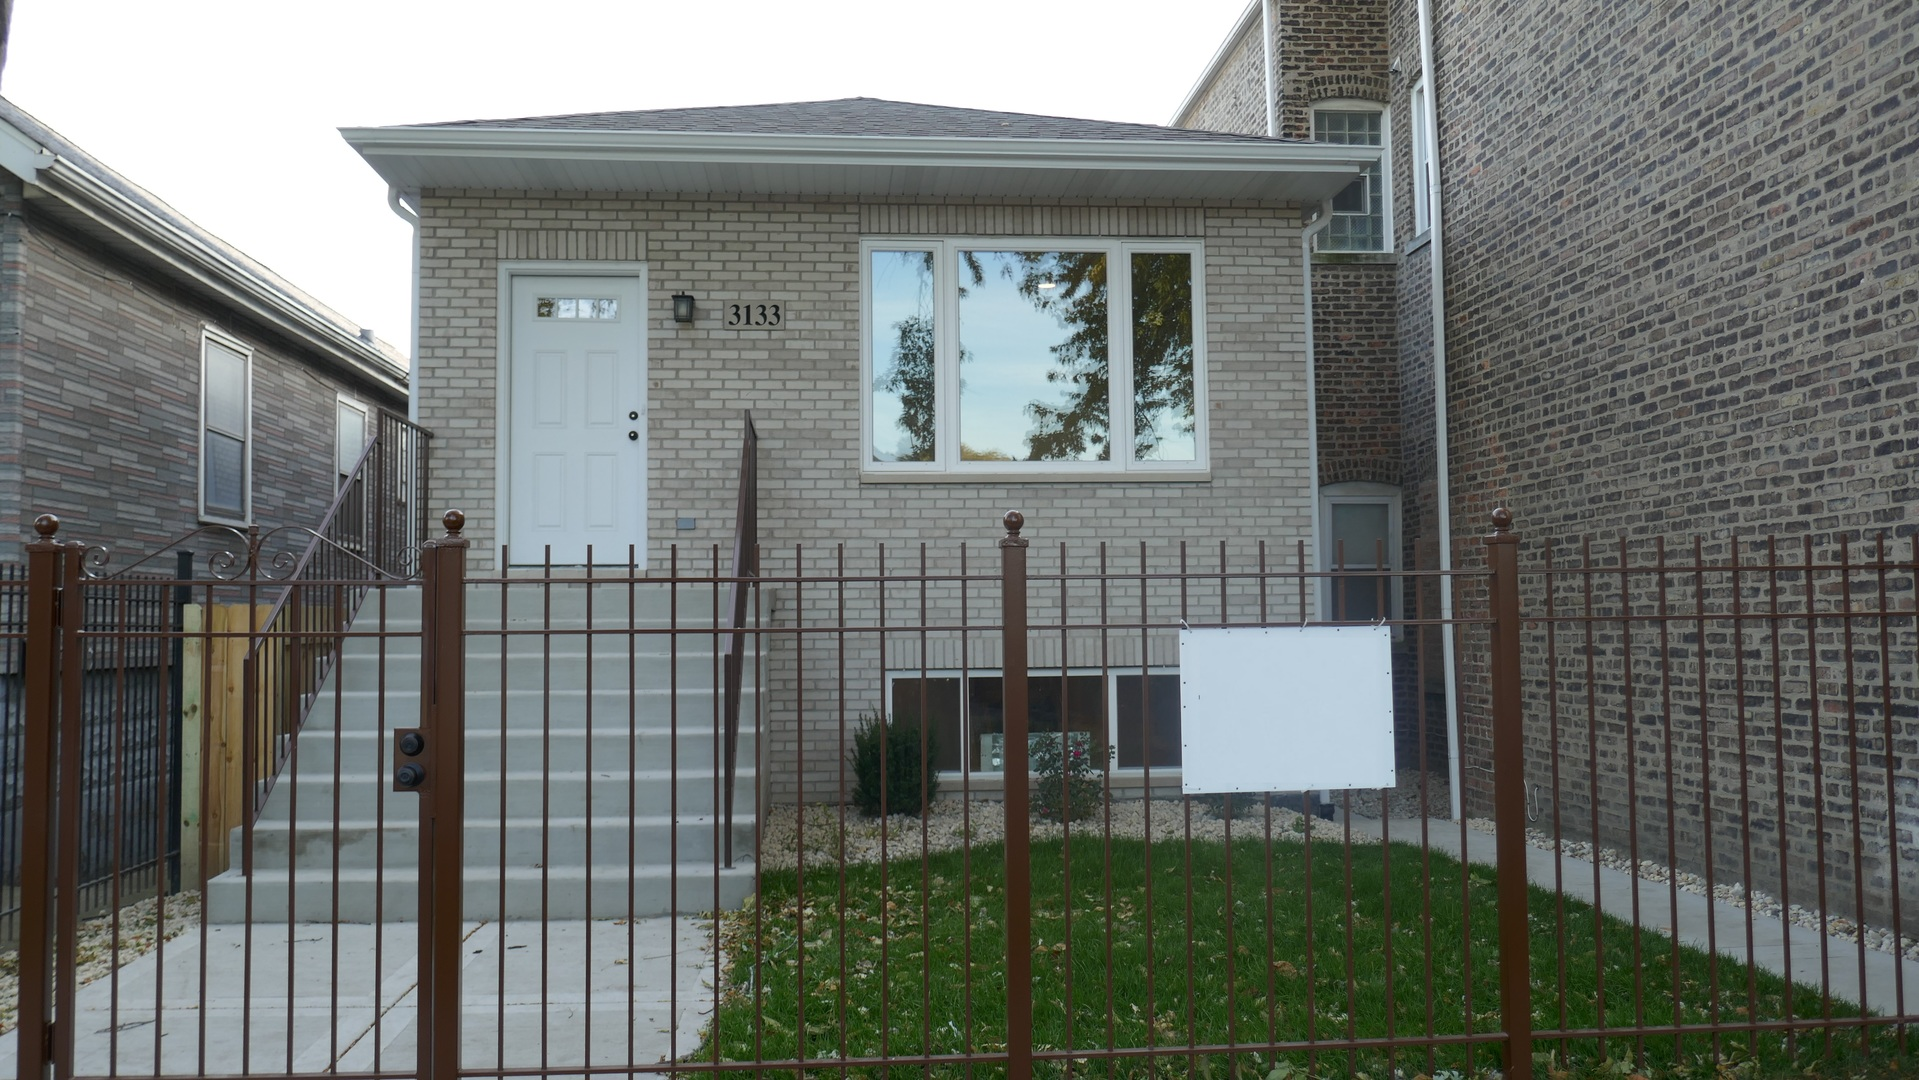 3133 WEST 38TH PLACE, CHICAGO, IL 60632